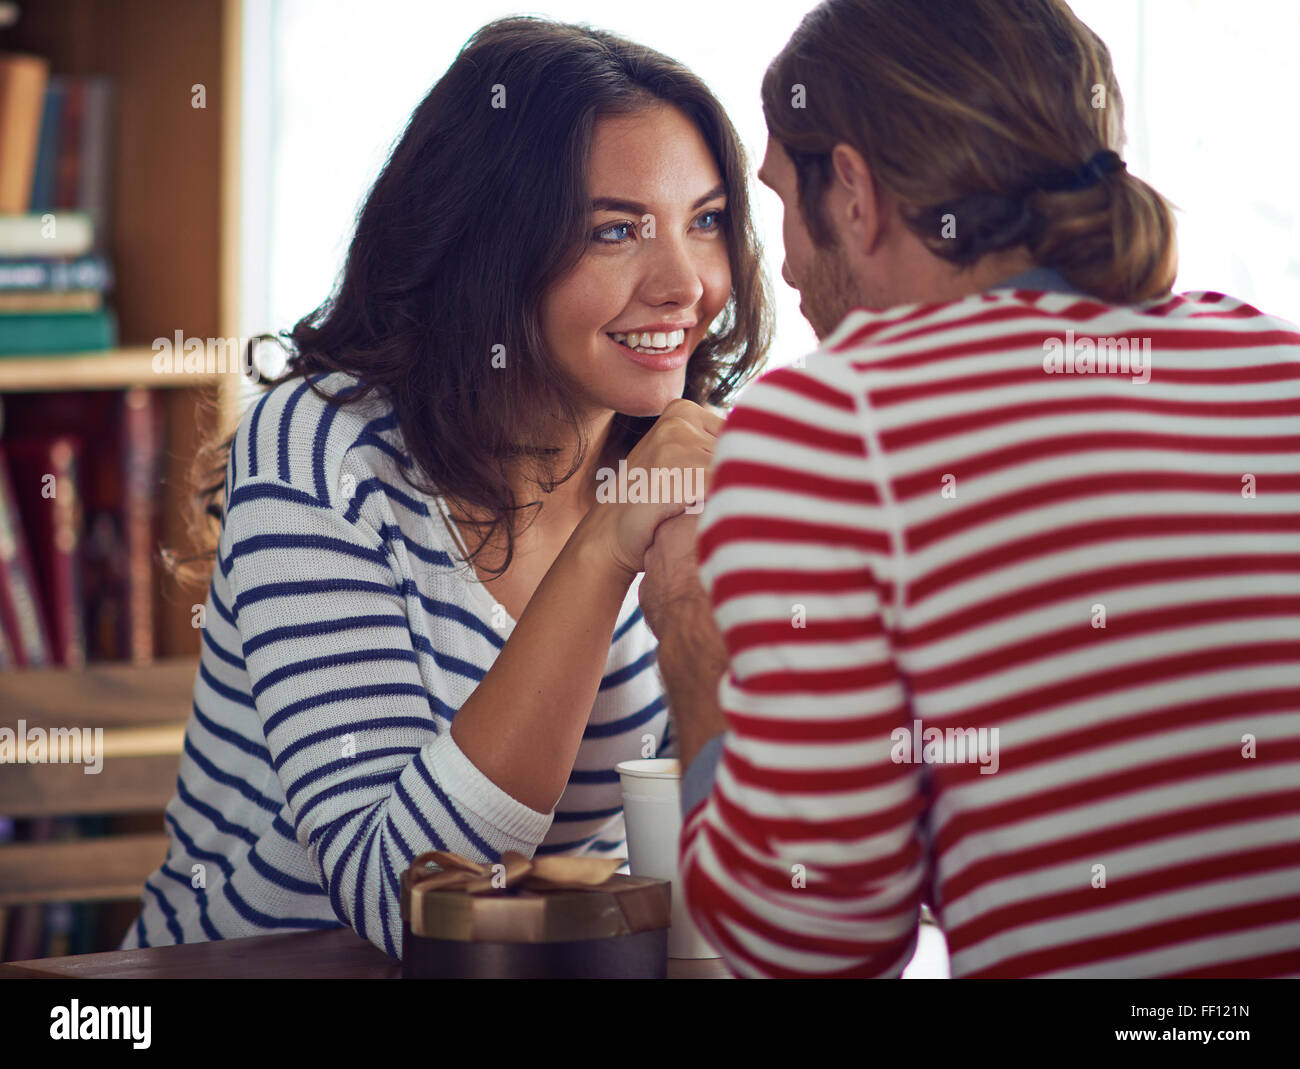 Amorous valentines looking at one another - Stock Image